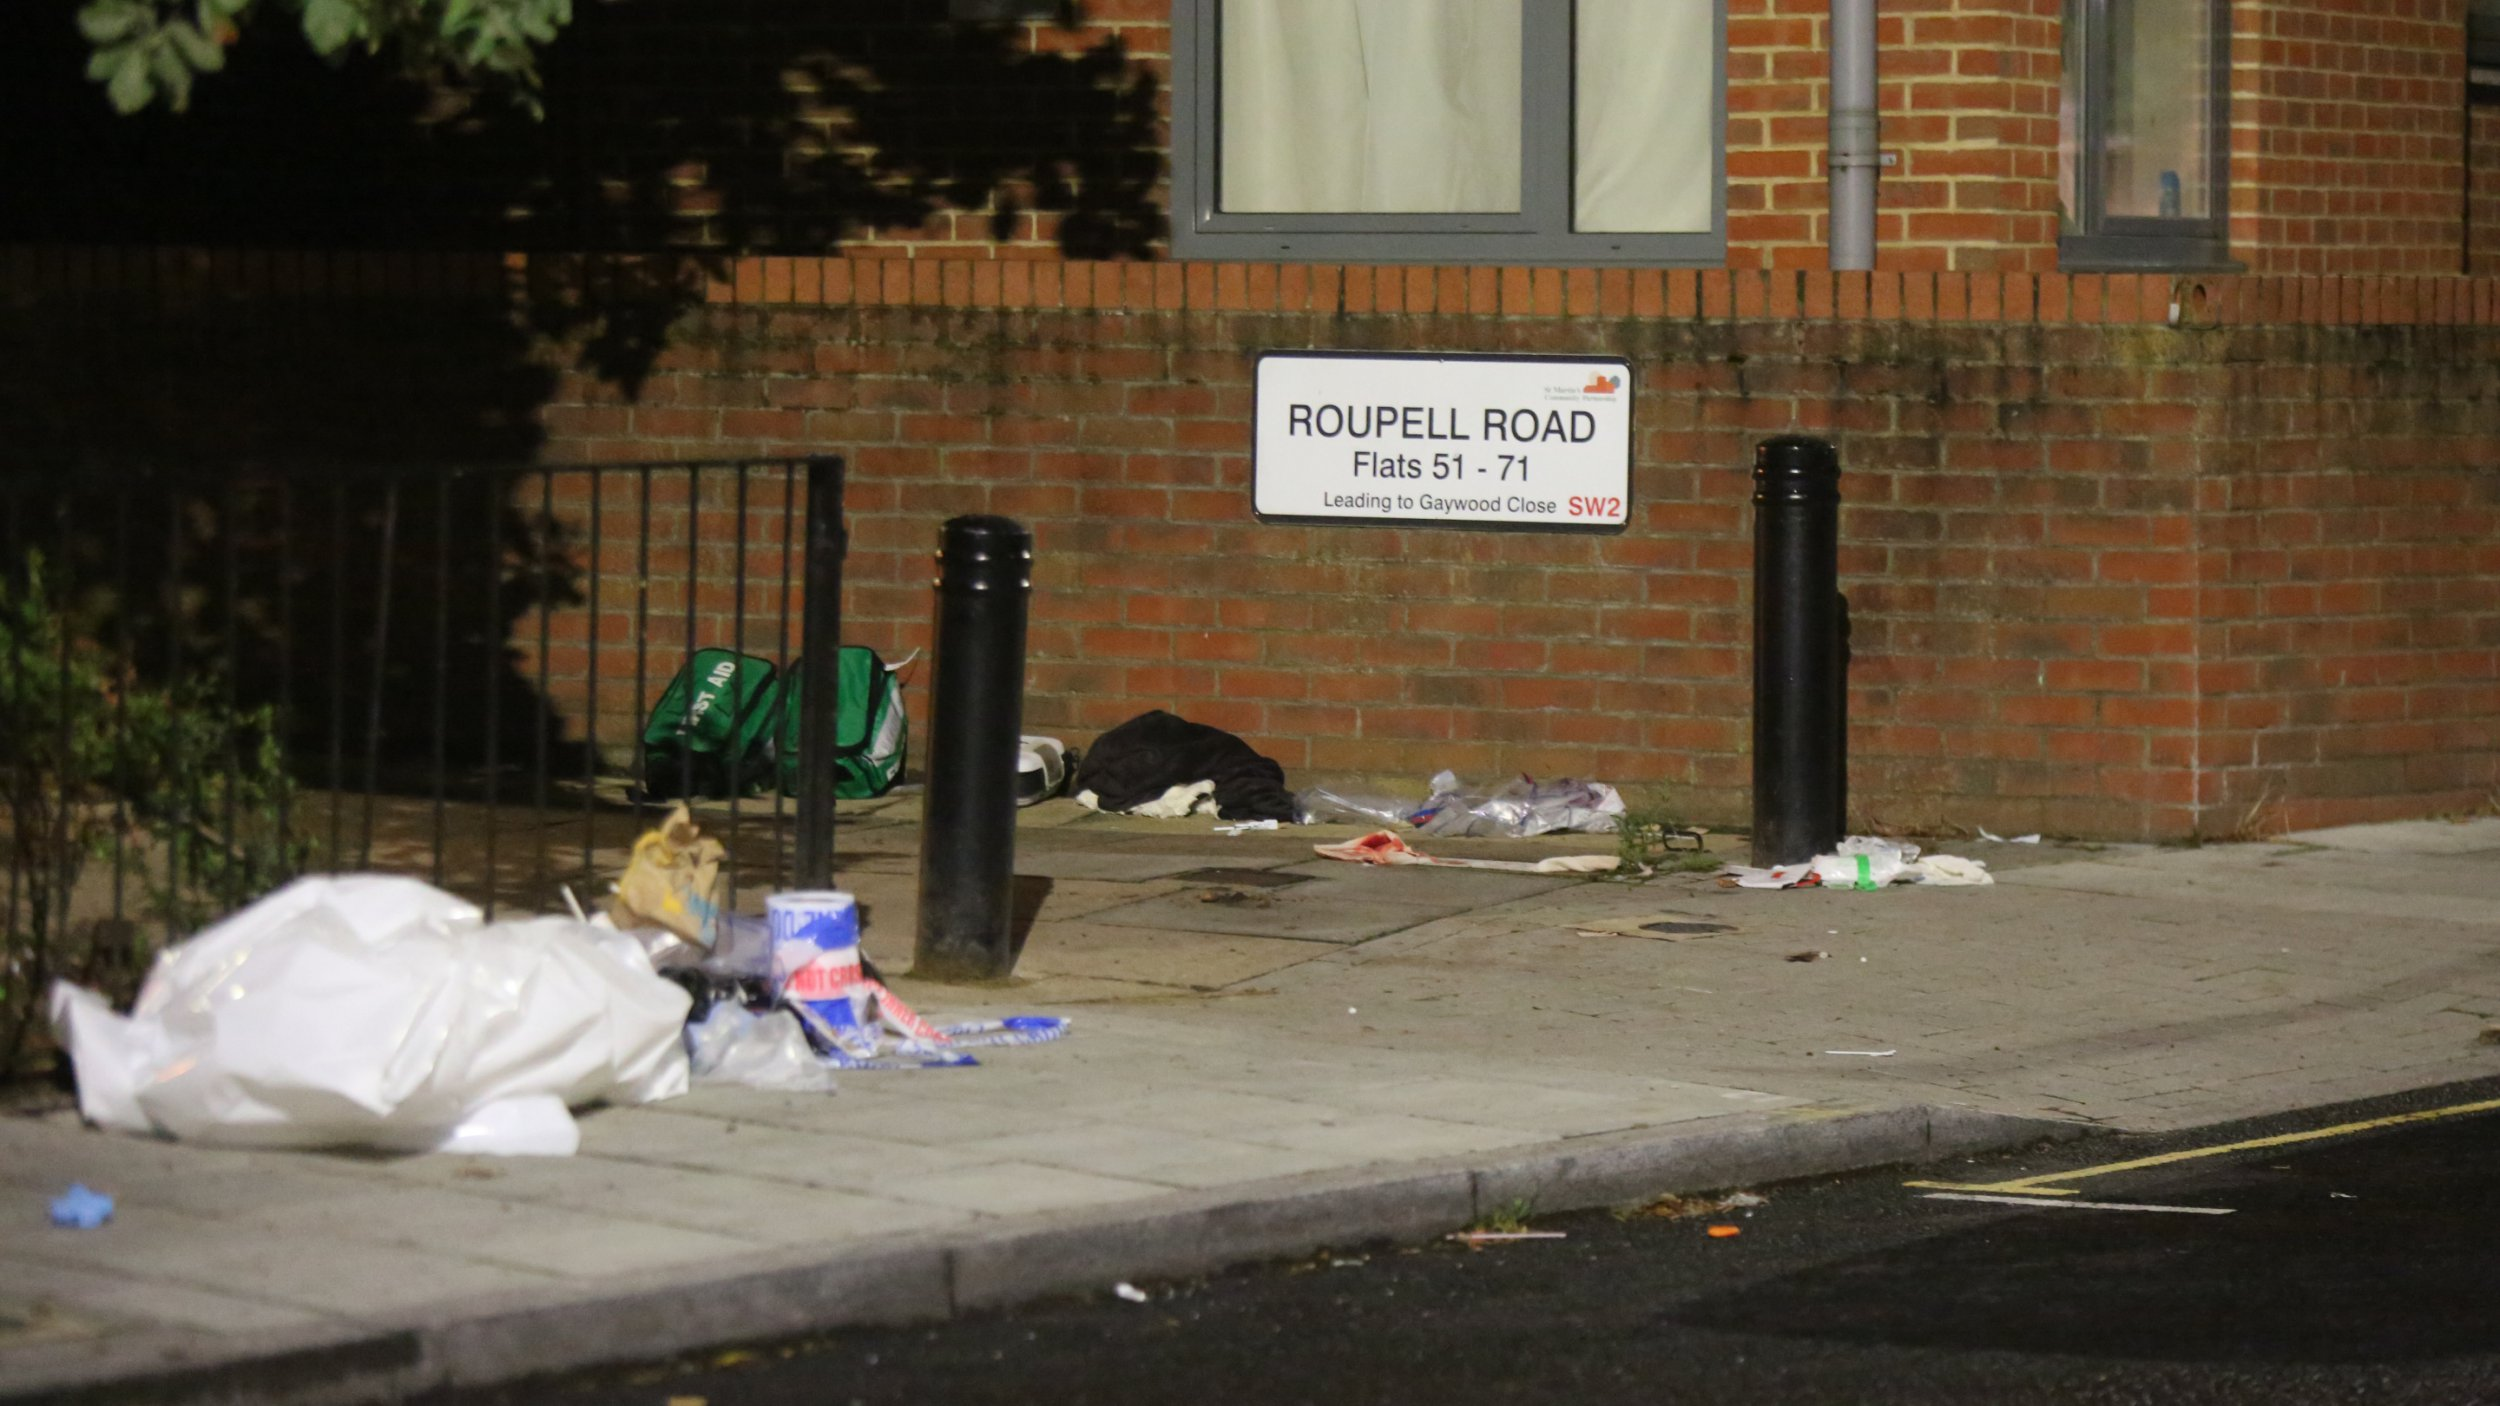 """Rouplell Road Lewisham SW4 Saturday 25th August 2018 Just an other day in Lambeth I am afford the shocking word as officers continue to guard the scene where a 23year old man has been stabbed multiple times. First aid kits and an AED unit covered in blood can be seen were Police officers attempt to save the man life. The broadway light stabbing happened around 5.15pm on Friday. The 23-year-old man is fighting for his life after being stabbed multiple times during a fight in south London. Officers discovered a young victim suffering """"a number of stab wounds,"""" a Metropolitan Police spokesman confirmed. The suspects fled the scene and no arrests have been made as of yet. The injured man was rushed to a south London hospital and his condition has been described as critical. Lambeth police officers who are investigating the incident have recovered a knife at the scene. The force is urging witnesses or anyone with information to come forward. Anyone who witnessed this incident, has footage or can identify those involved is asked to call Lambeth Police quoting CAD5375/24AUG Alternatively you can Tweet @MetCC or call Crimestoppers anonymously on 0800 555 111. ?UKNIP"""